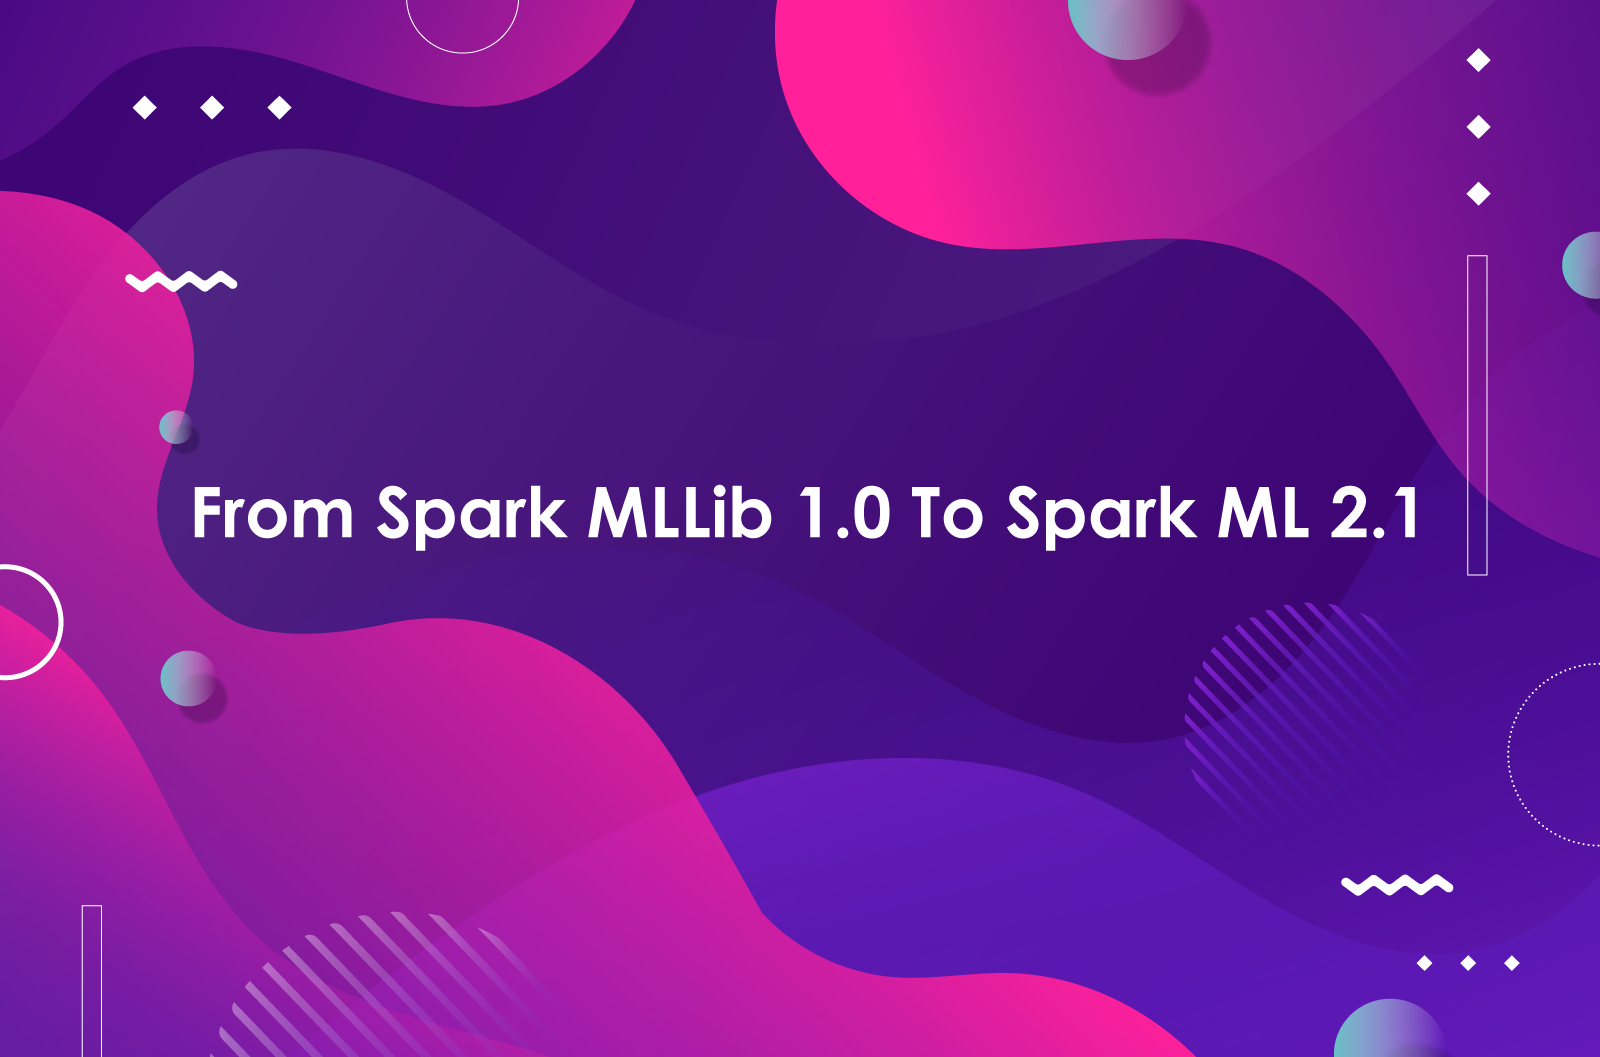 From Spark MLLib 1.0 to Spark ML 2.1